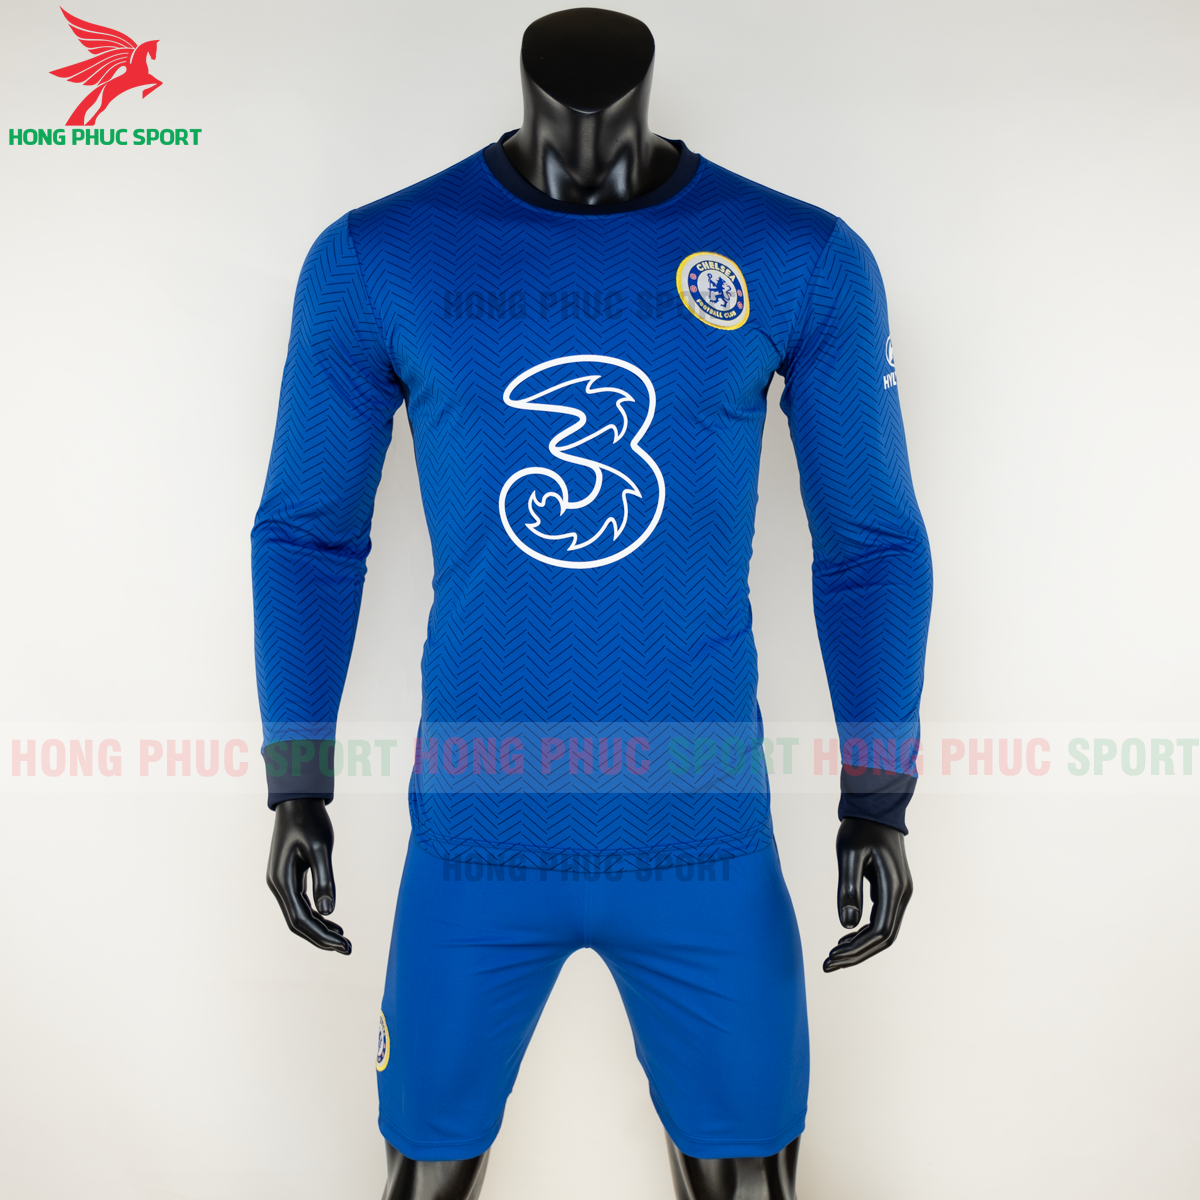 https://cdn.hongphucsport.com/unsafe/s4.shopbay.vn/files/285/ao-dai-tay-chelsea-2020-san-nha-2-5f8fbca0d27df.png